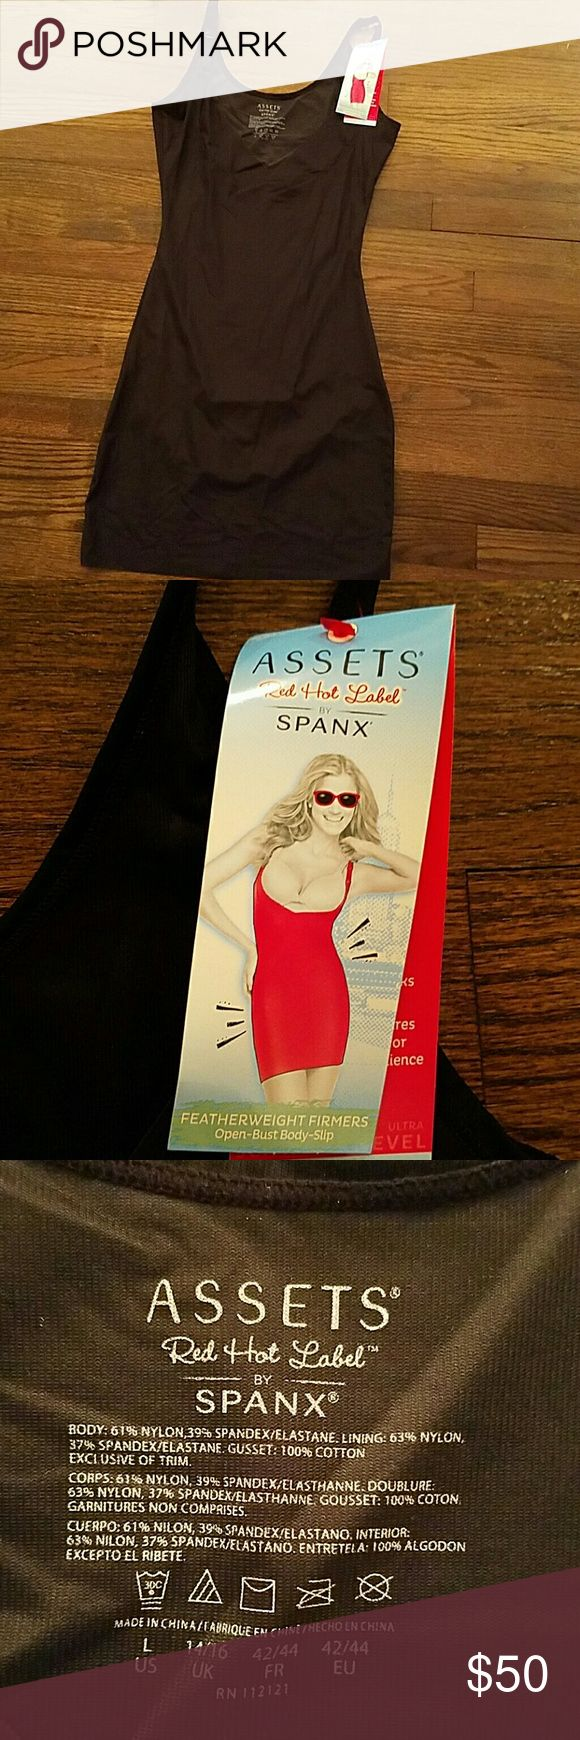 Spanx Spanx Slip with panty attached, superb control and fit. Hides the beauty you don't want to expose. SPANX Intimates & Sleepwear Shapewear